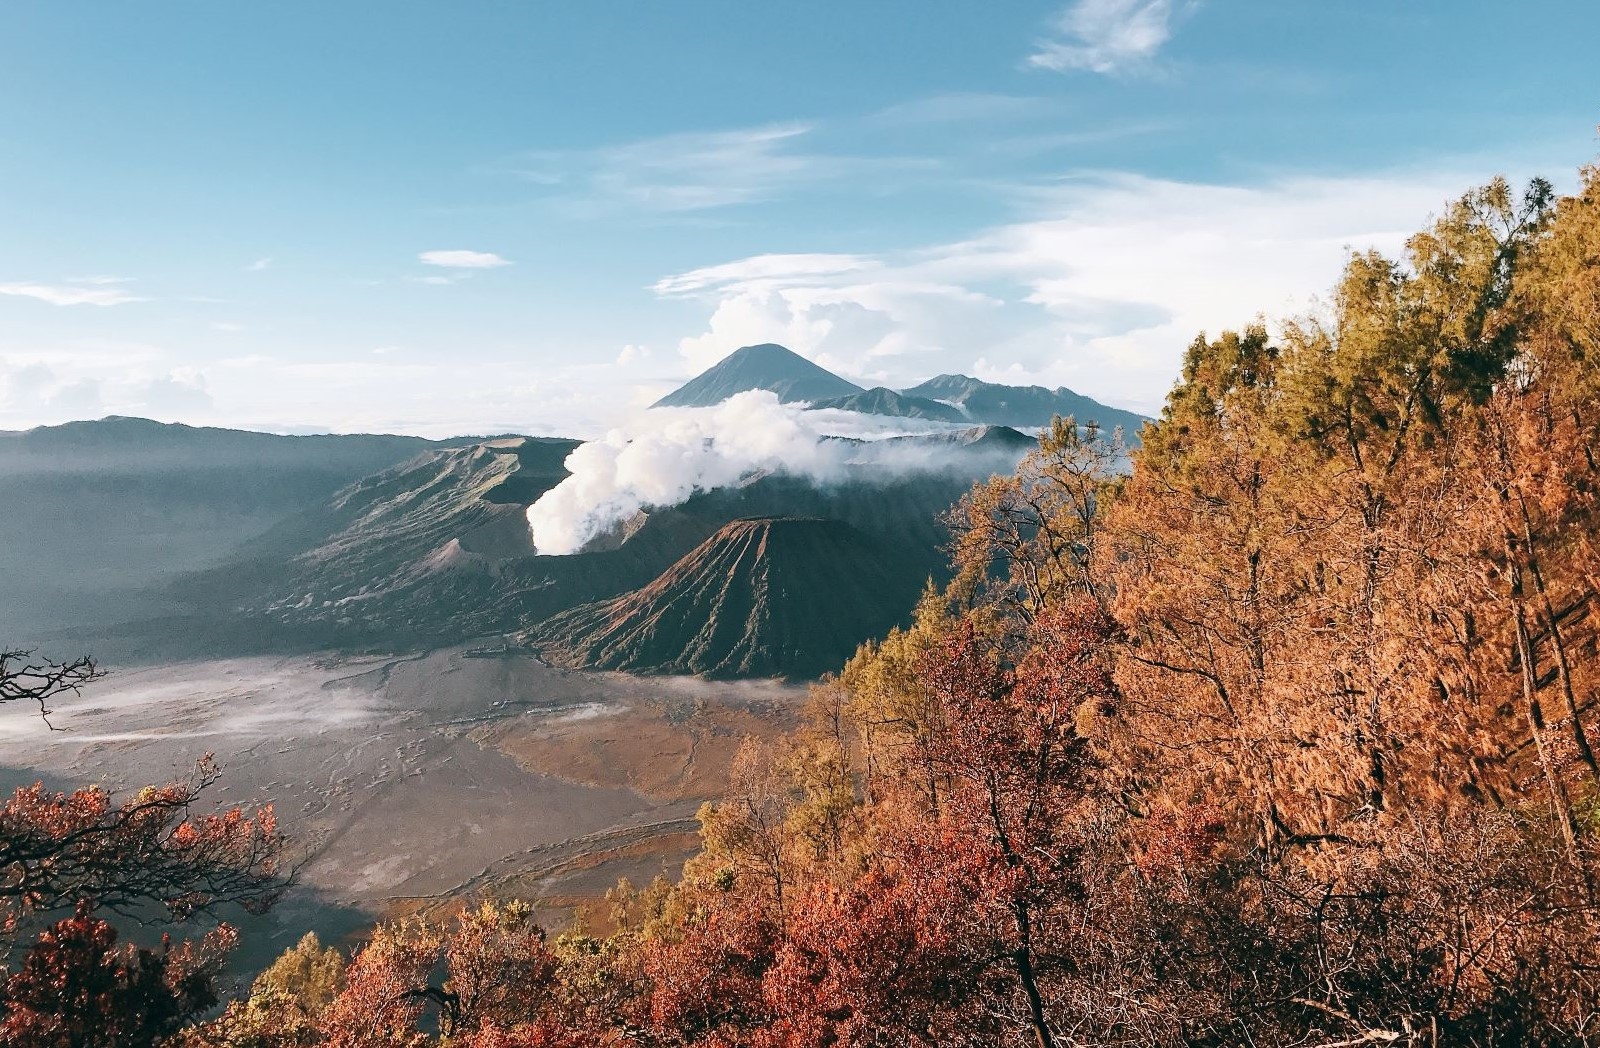 Den Indonesia, cham chan toi mieng nui lua Bromo hinh anh 53